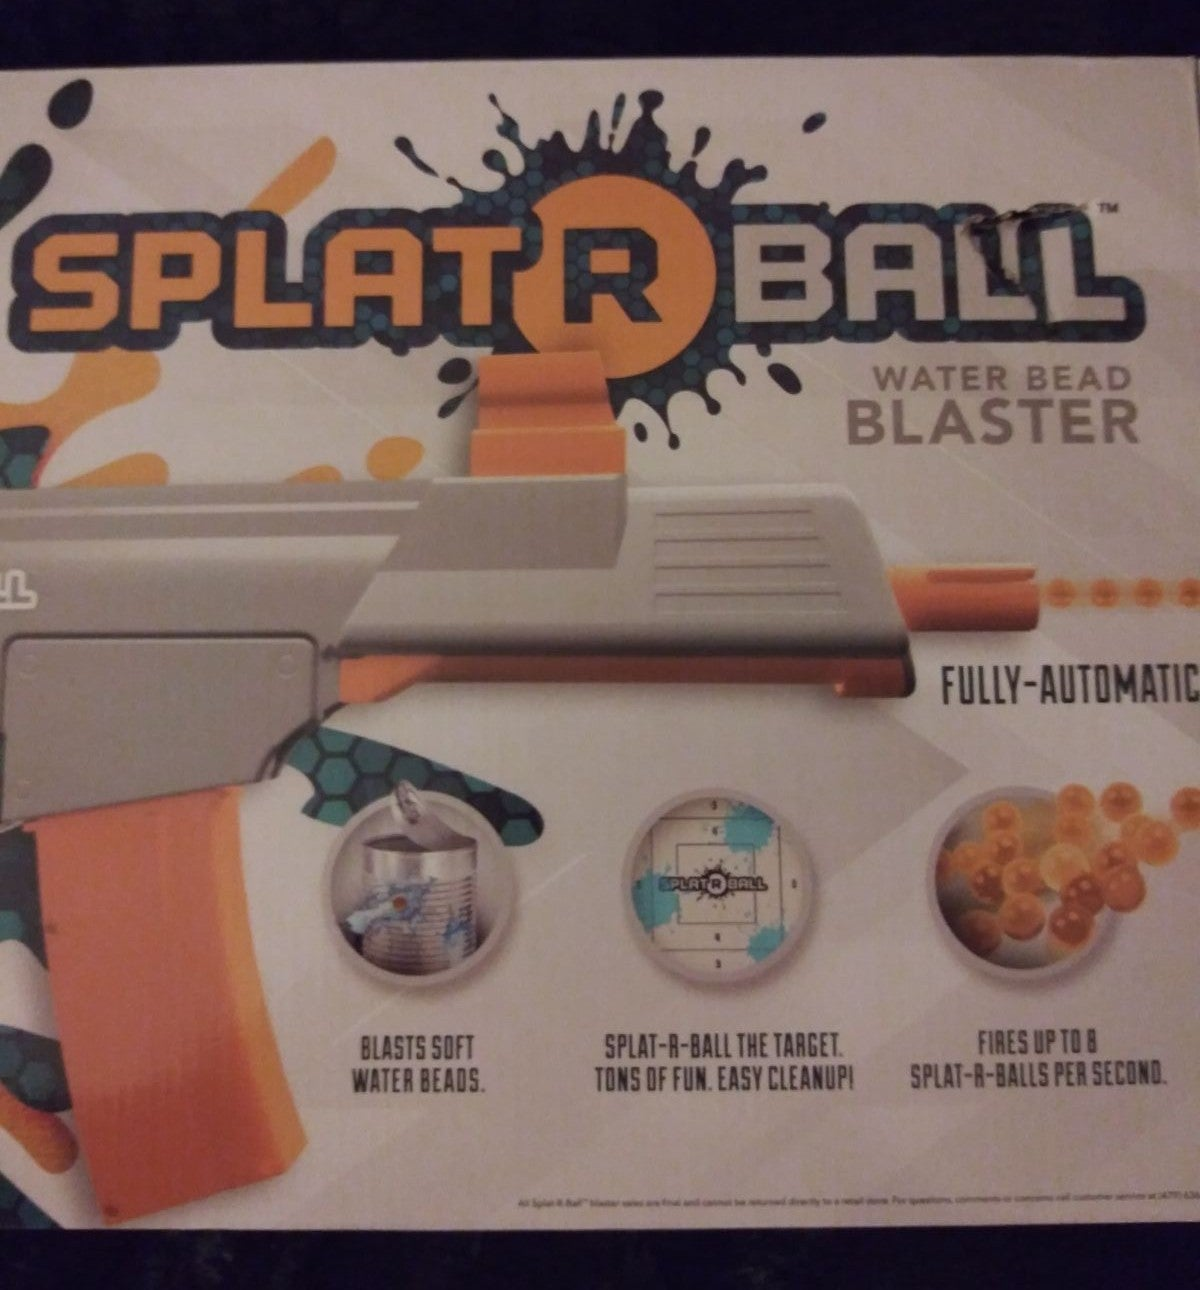 Splat R Ball Water Bead Blaster